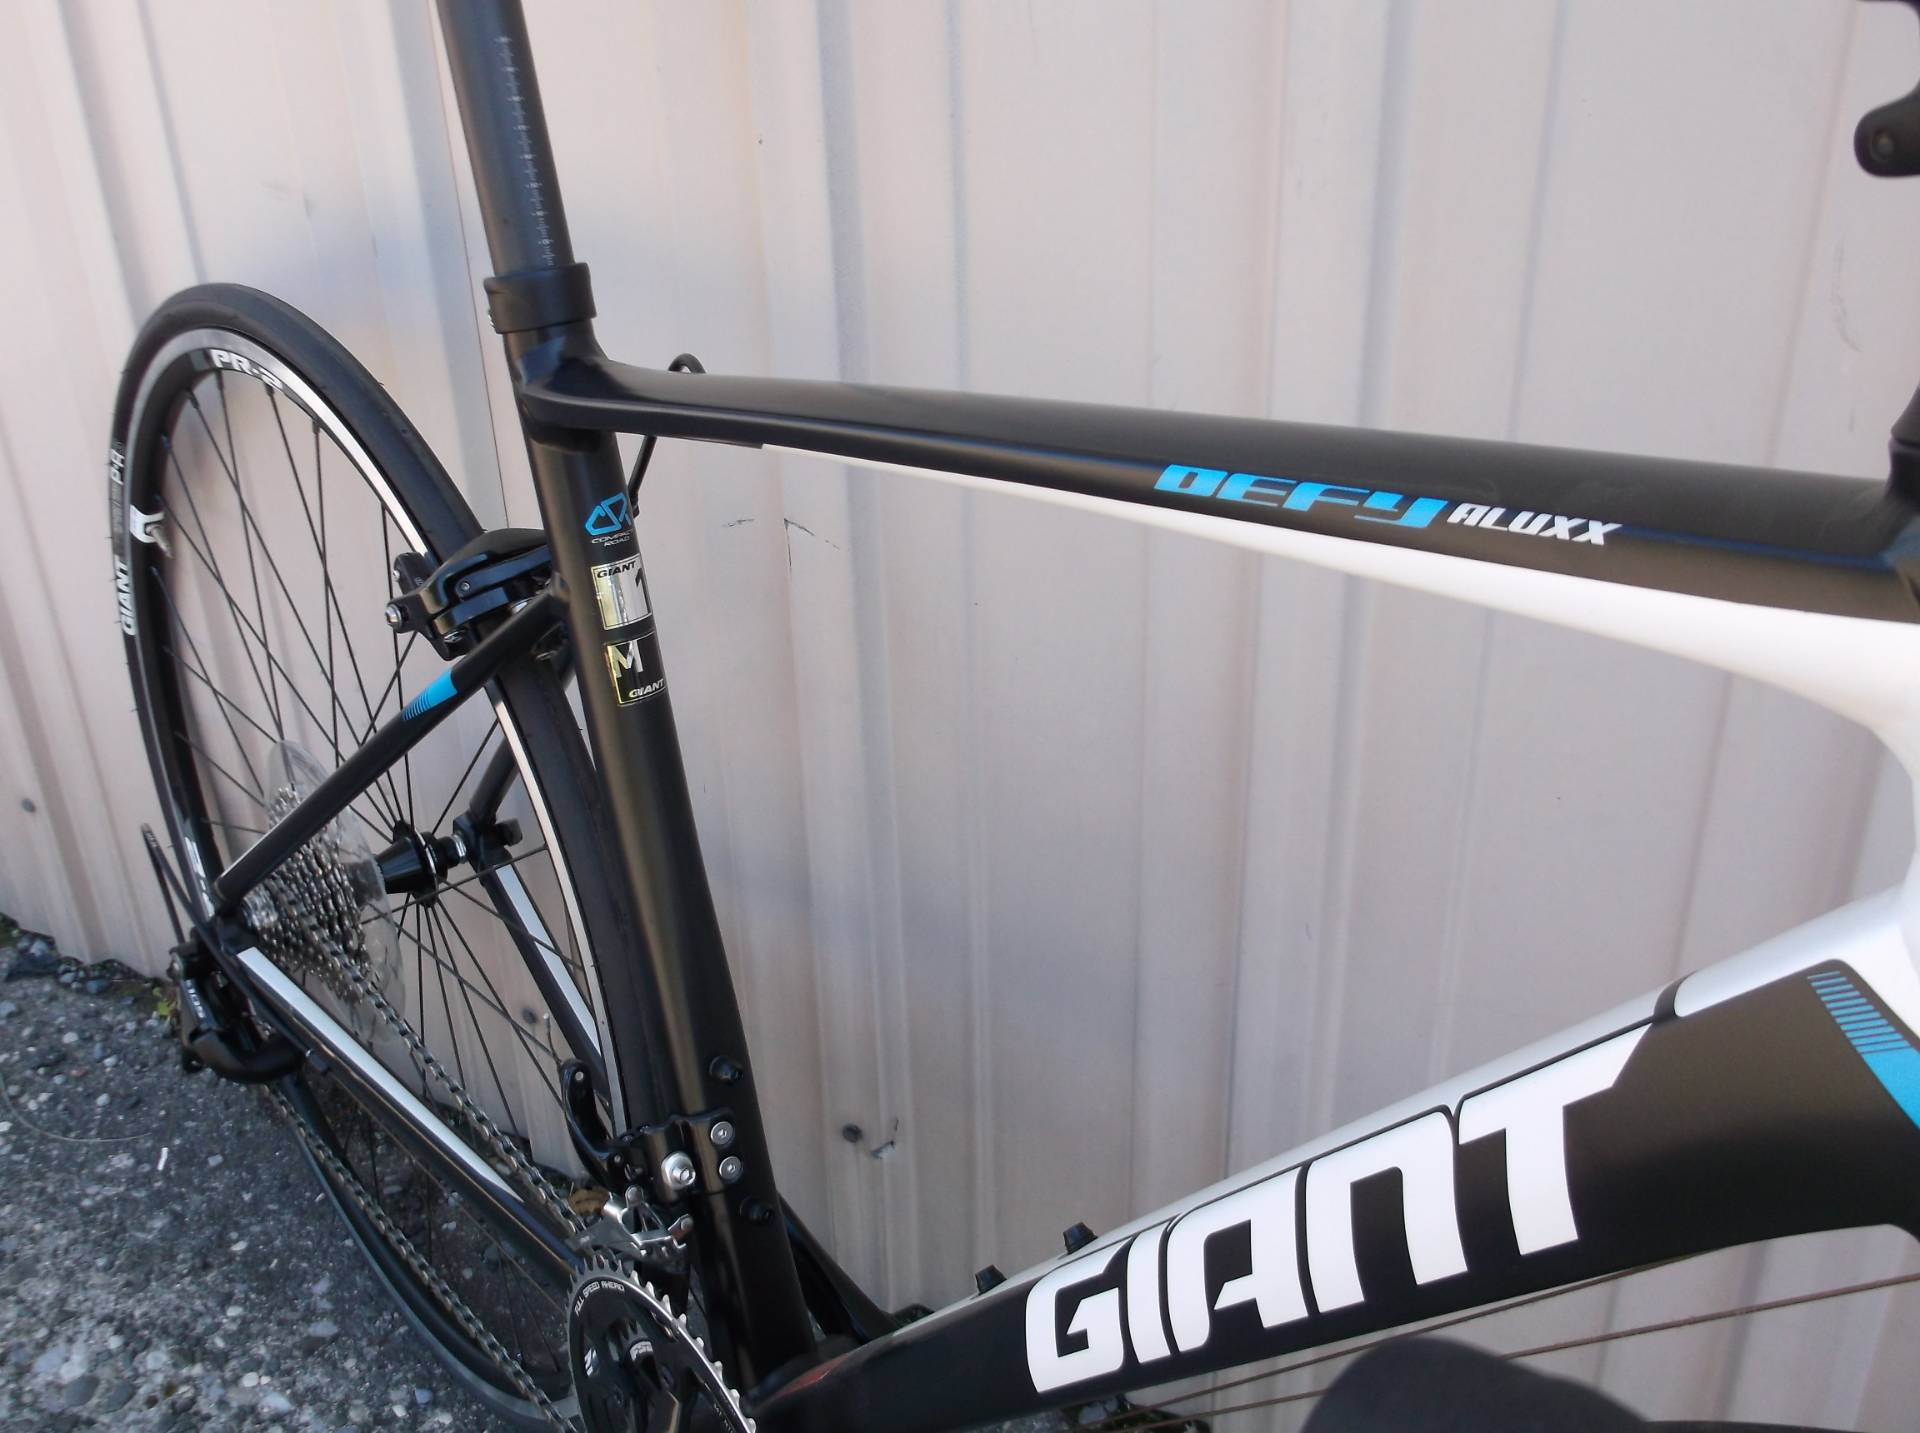 2015 Other Giant Defy 1 Medium Shimano 11 speed in Howell, Michigan